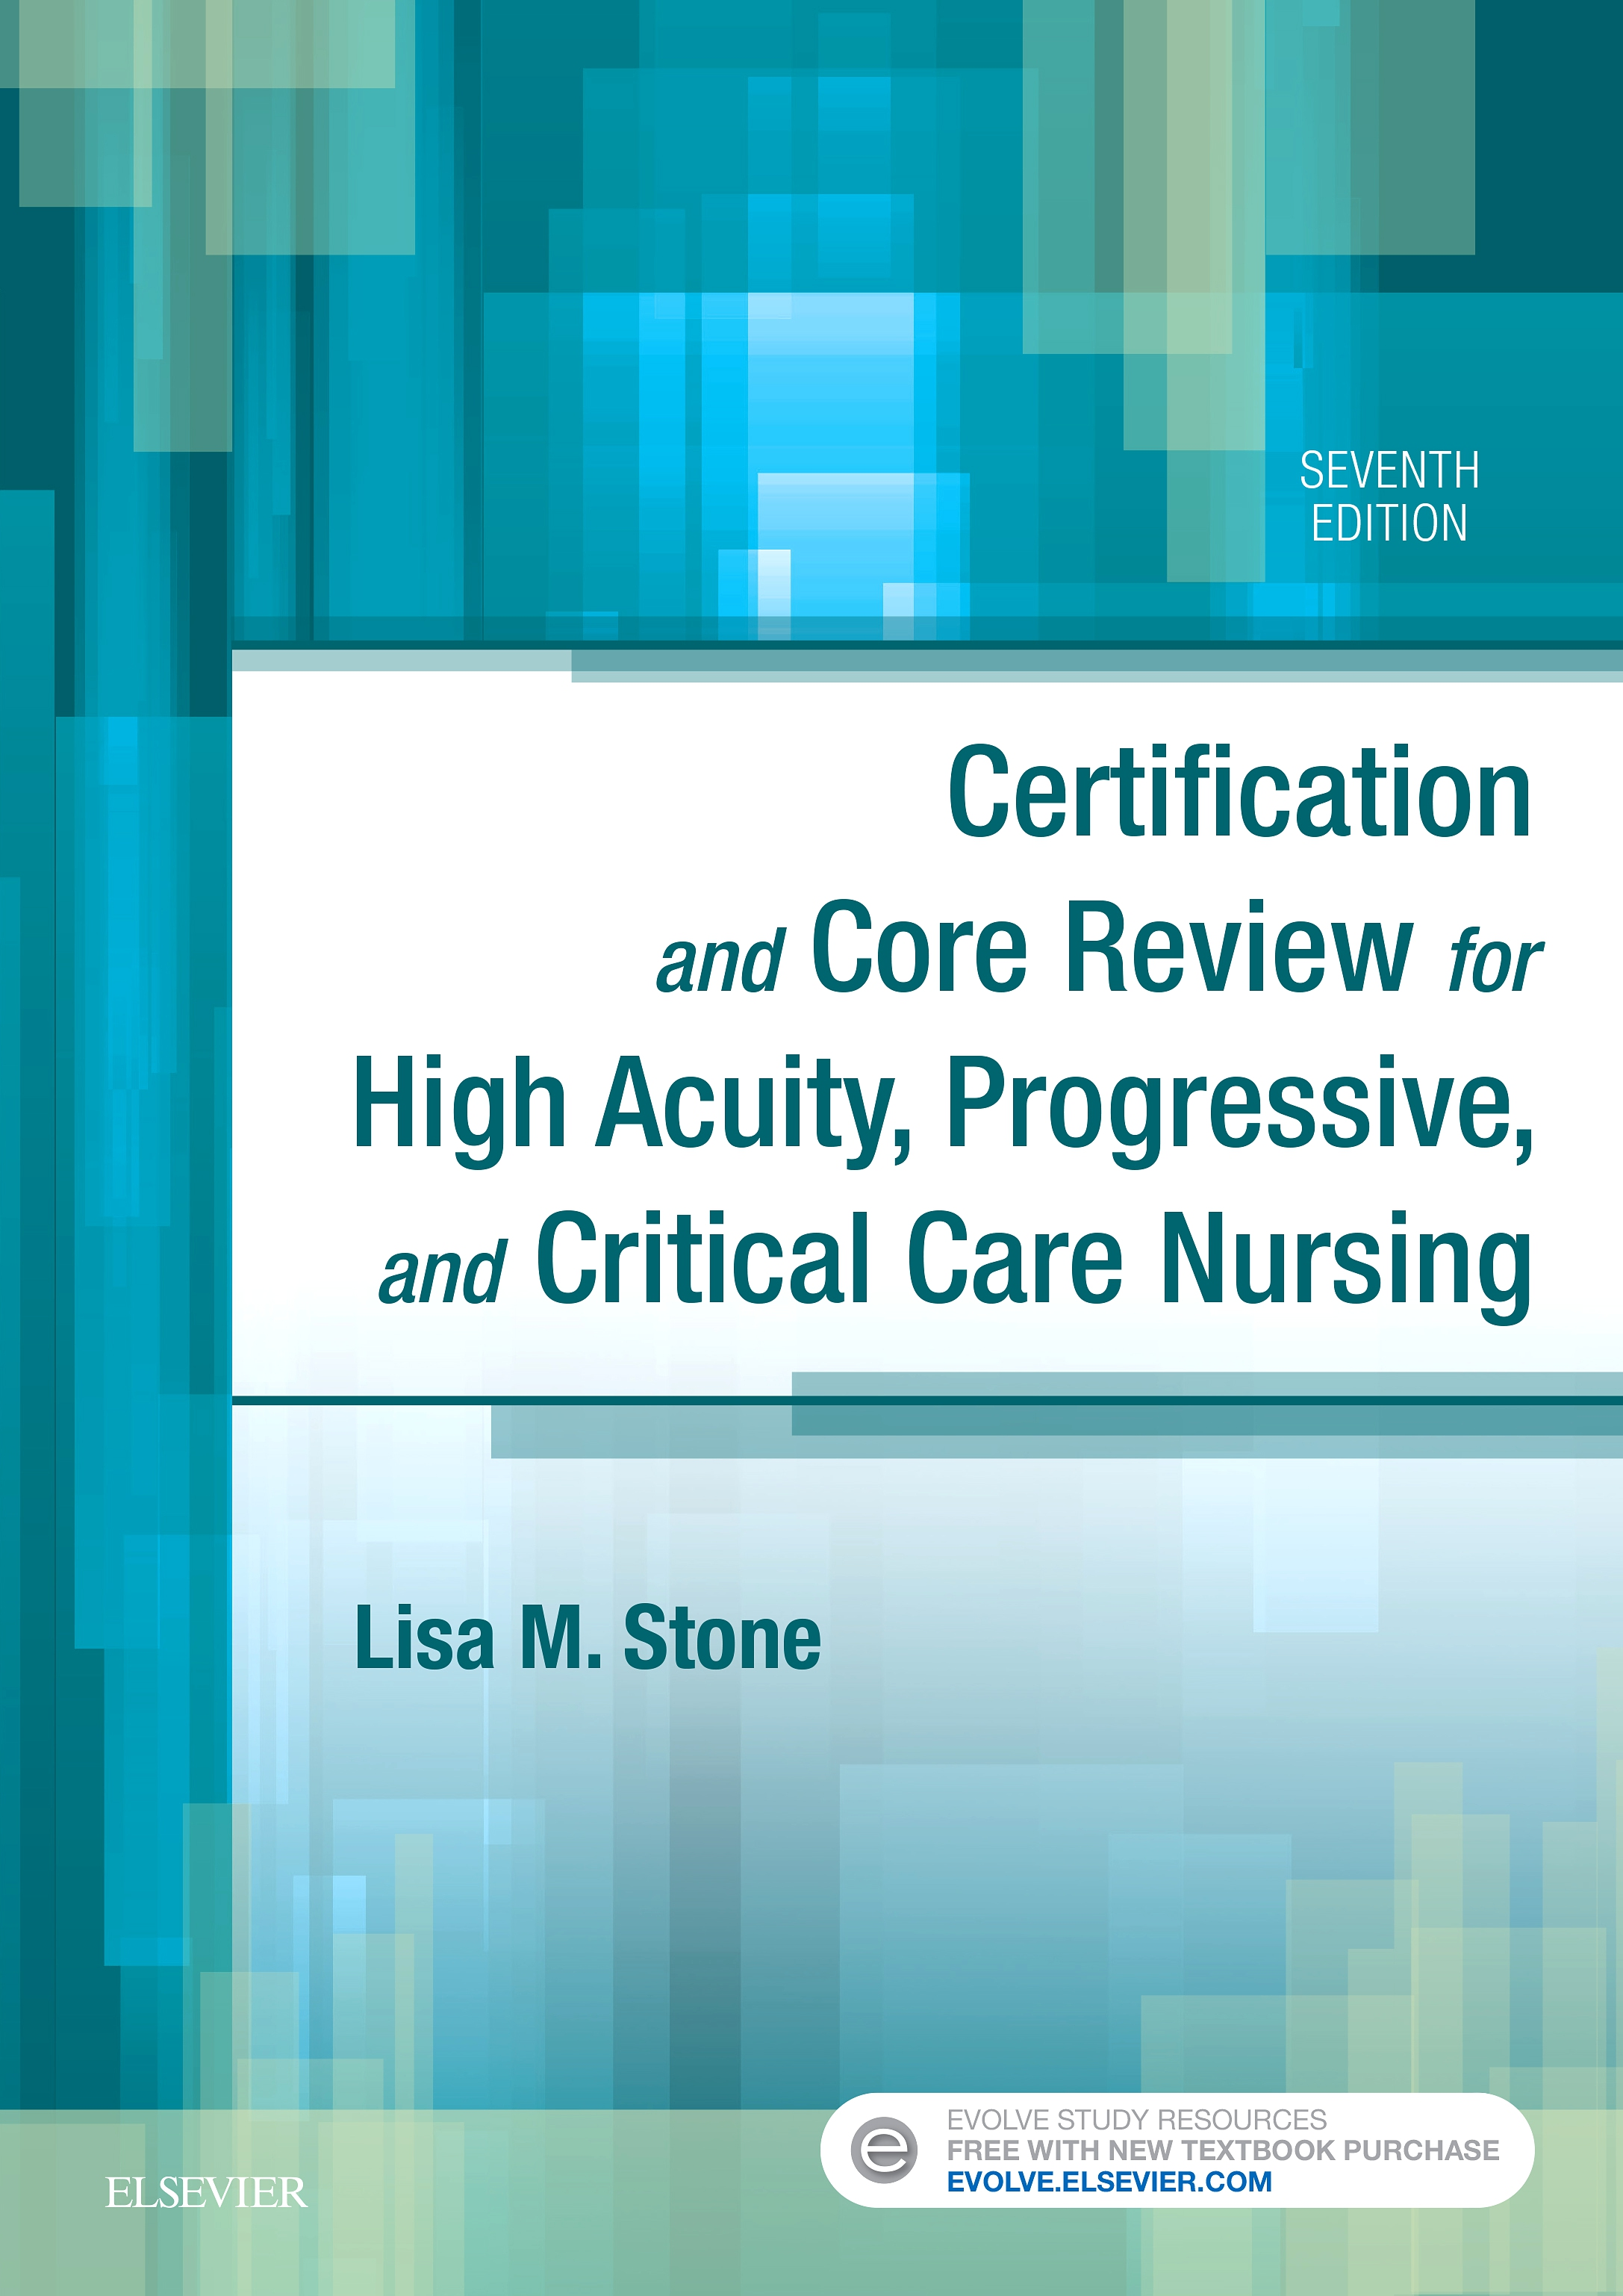 Evolve Resources for Certification and Core Review for High Acuity, Progressive, and Critical Care Nursing, 7th Edition